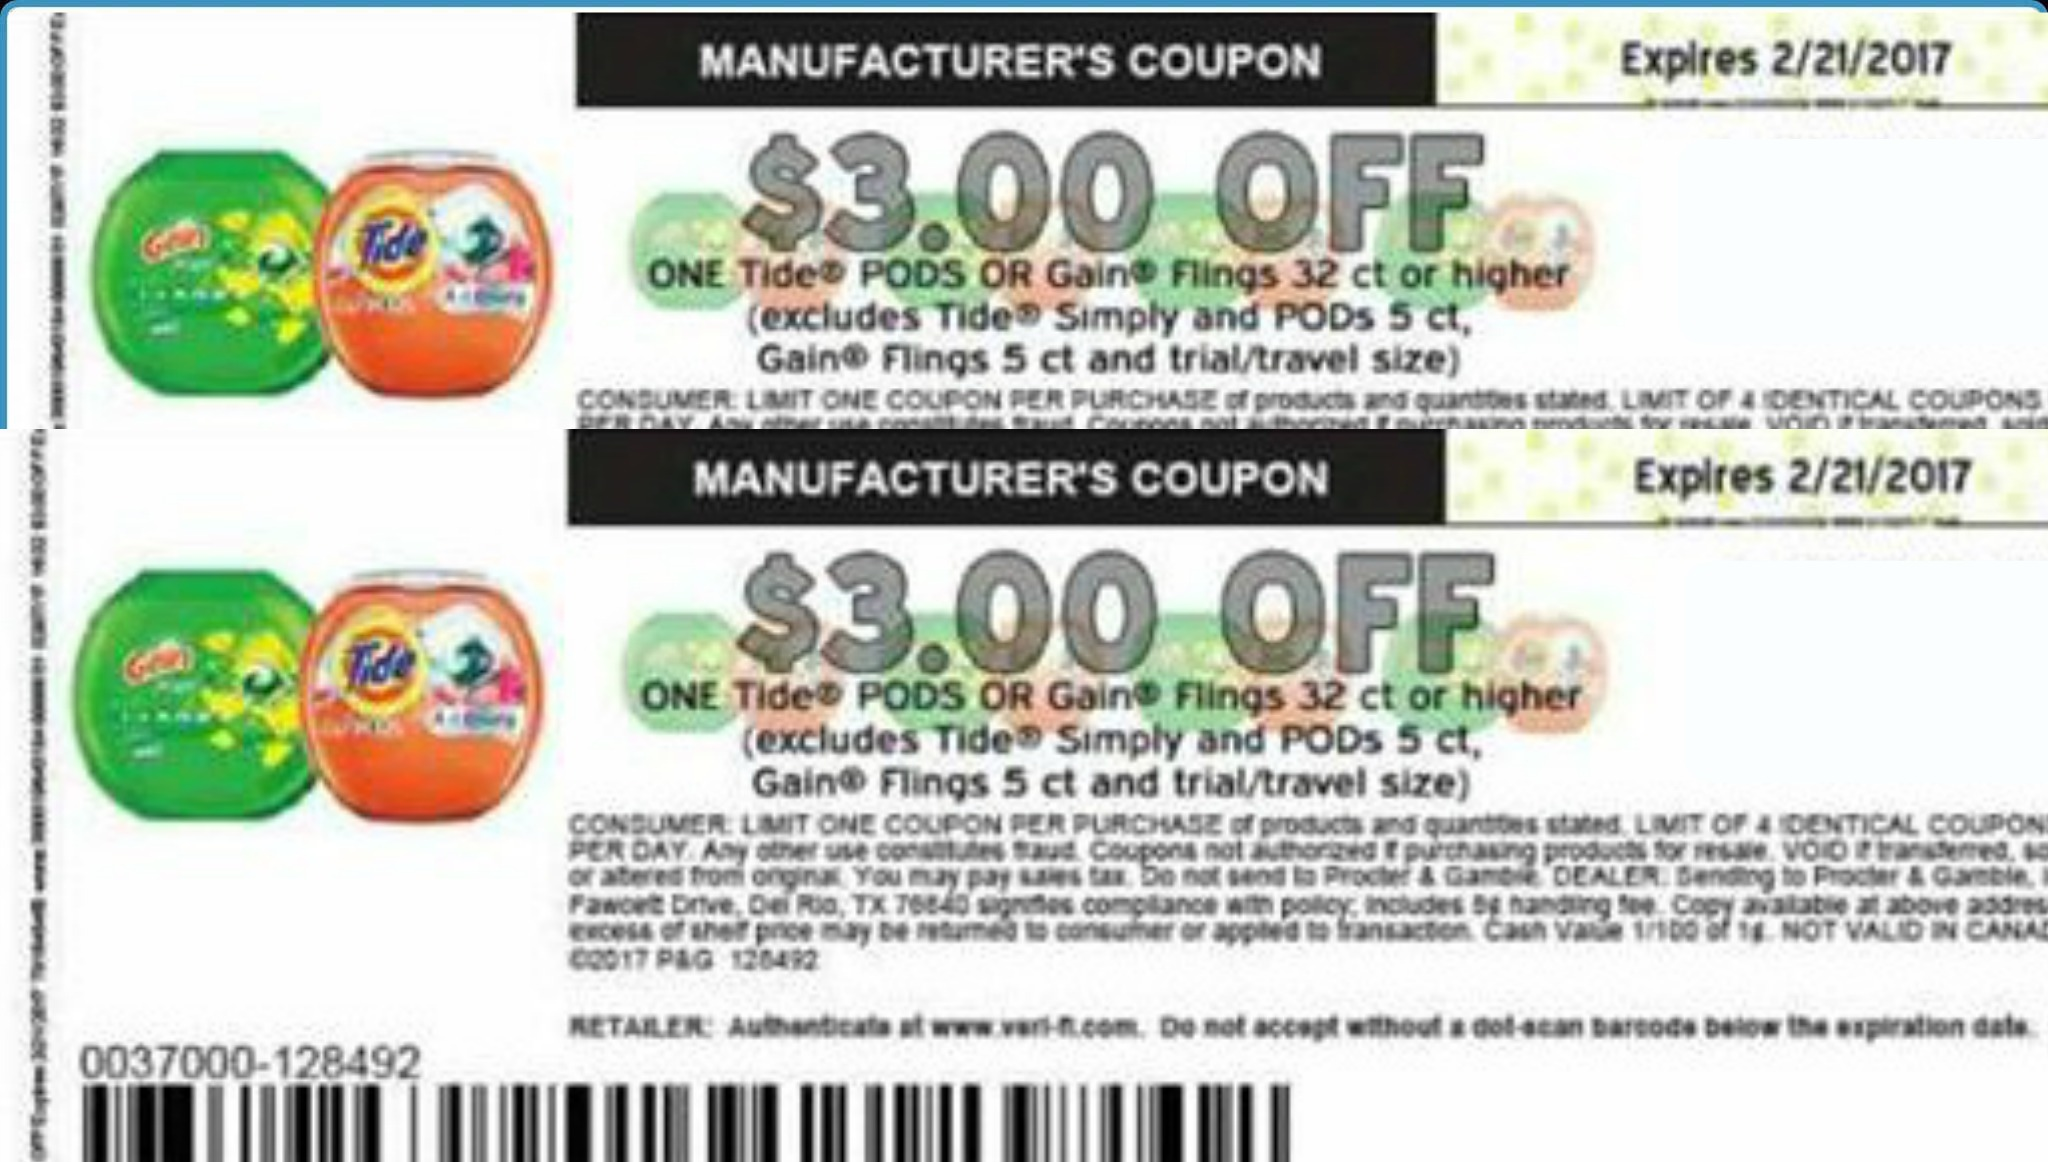 photo about Gain Printable Coupons identify Warm Tide Pods or Revenue Flings $3/1 printable coupon